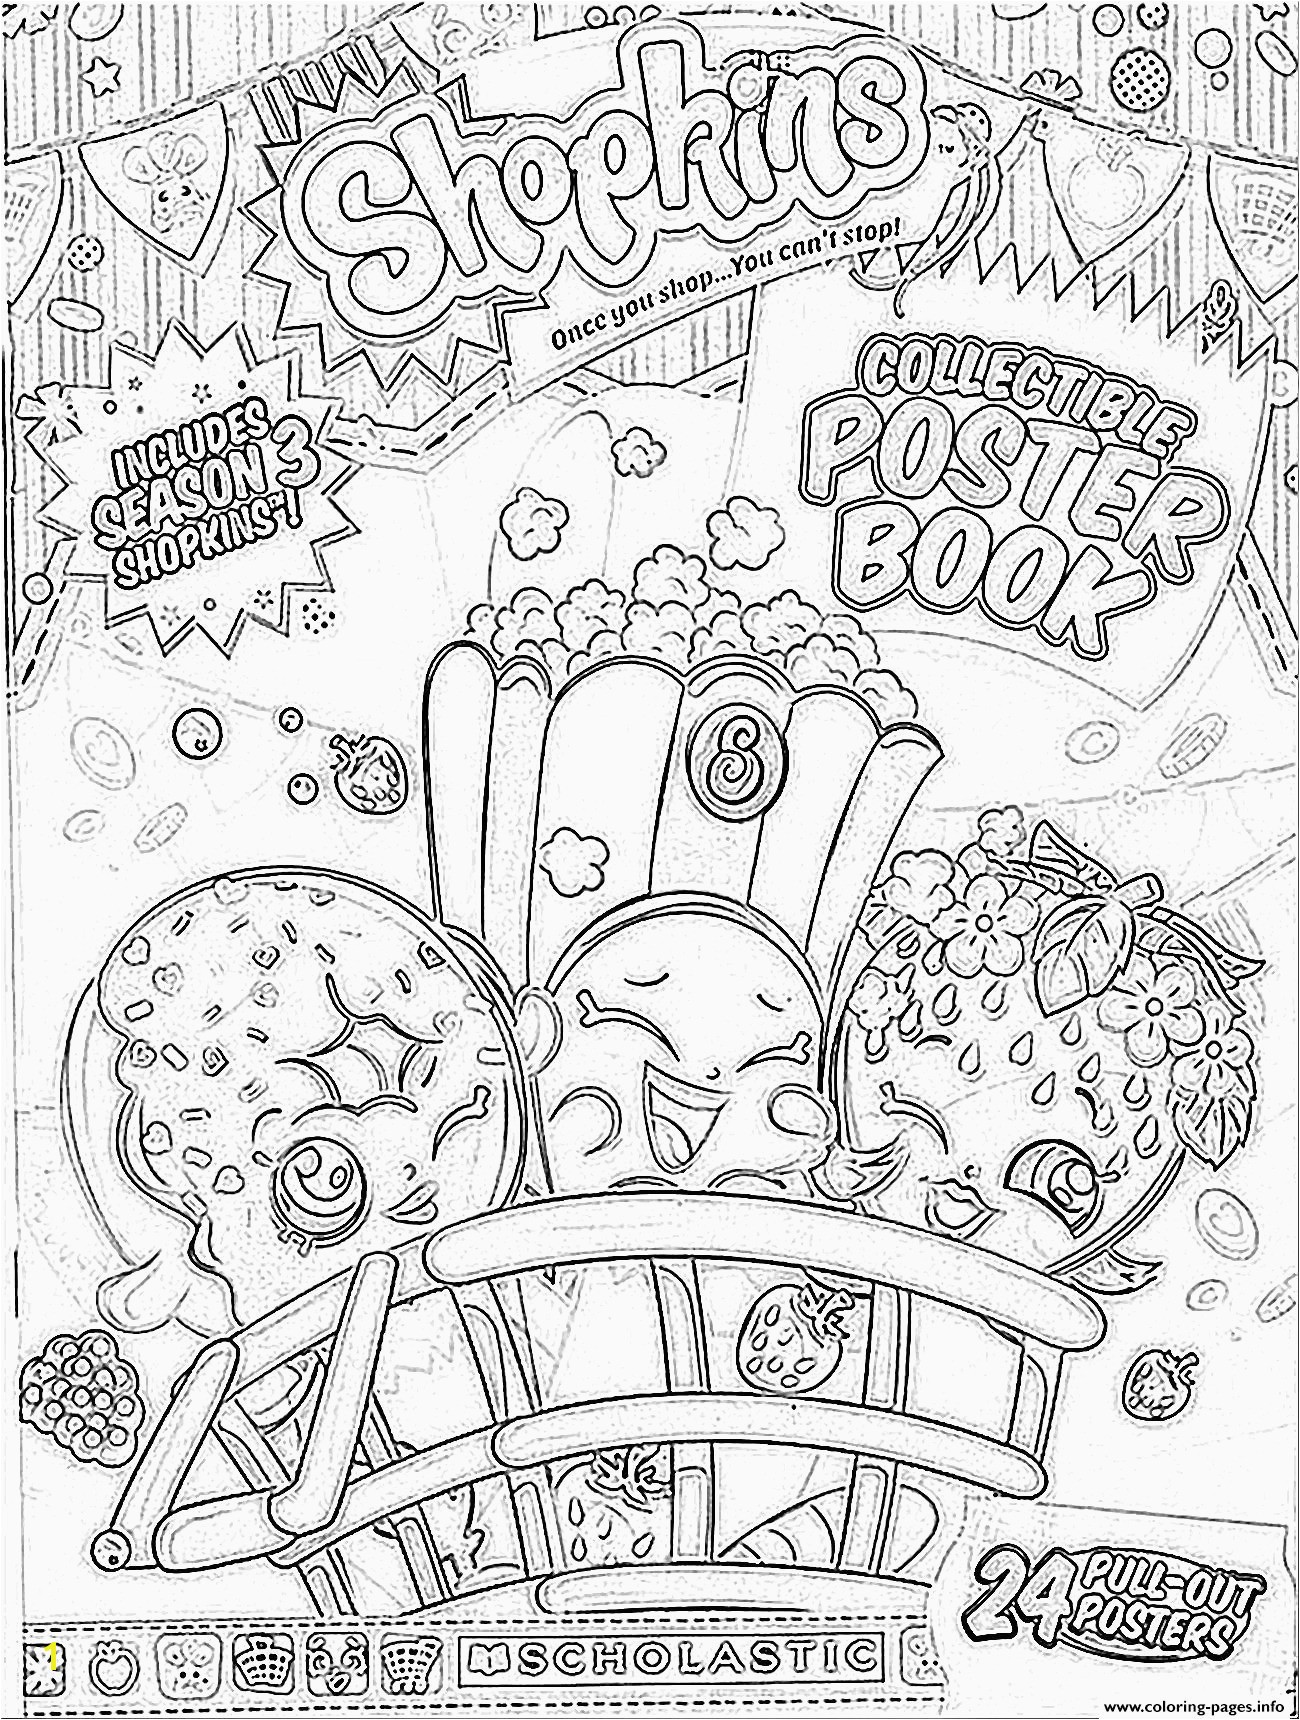 Letter P Coloring Pages Fresh Letter P Coloring Pages Awesome Best Coloring Page Adult Od Kids Tooth Coloring Pages New toothbrush toothpaste